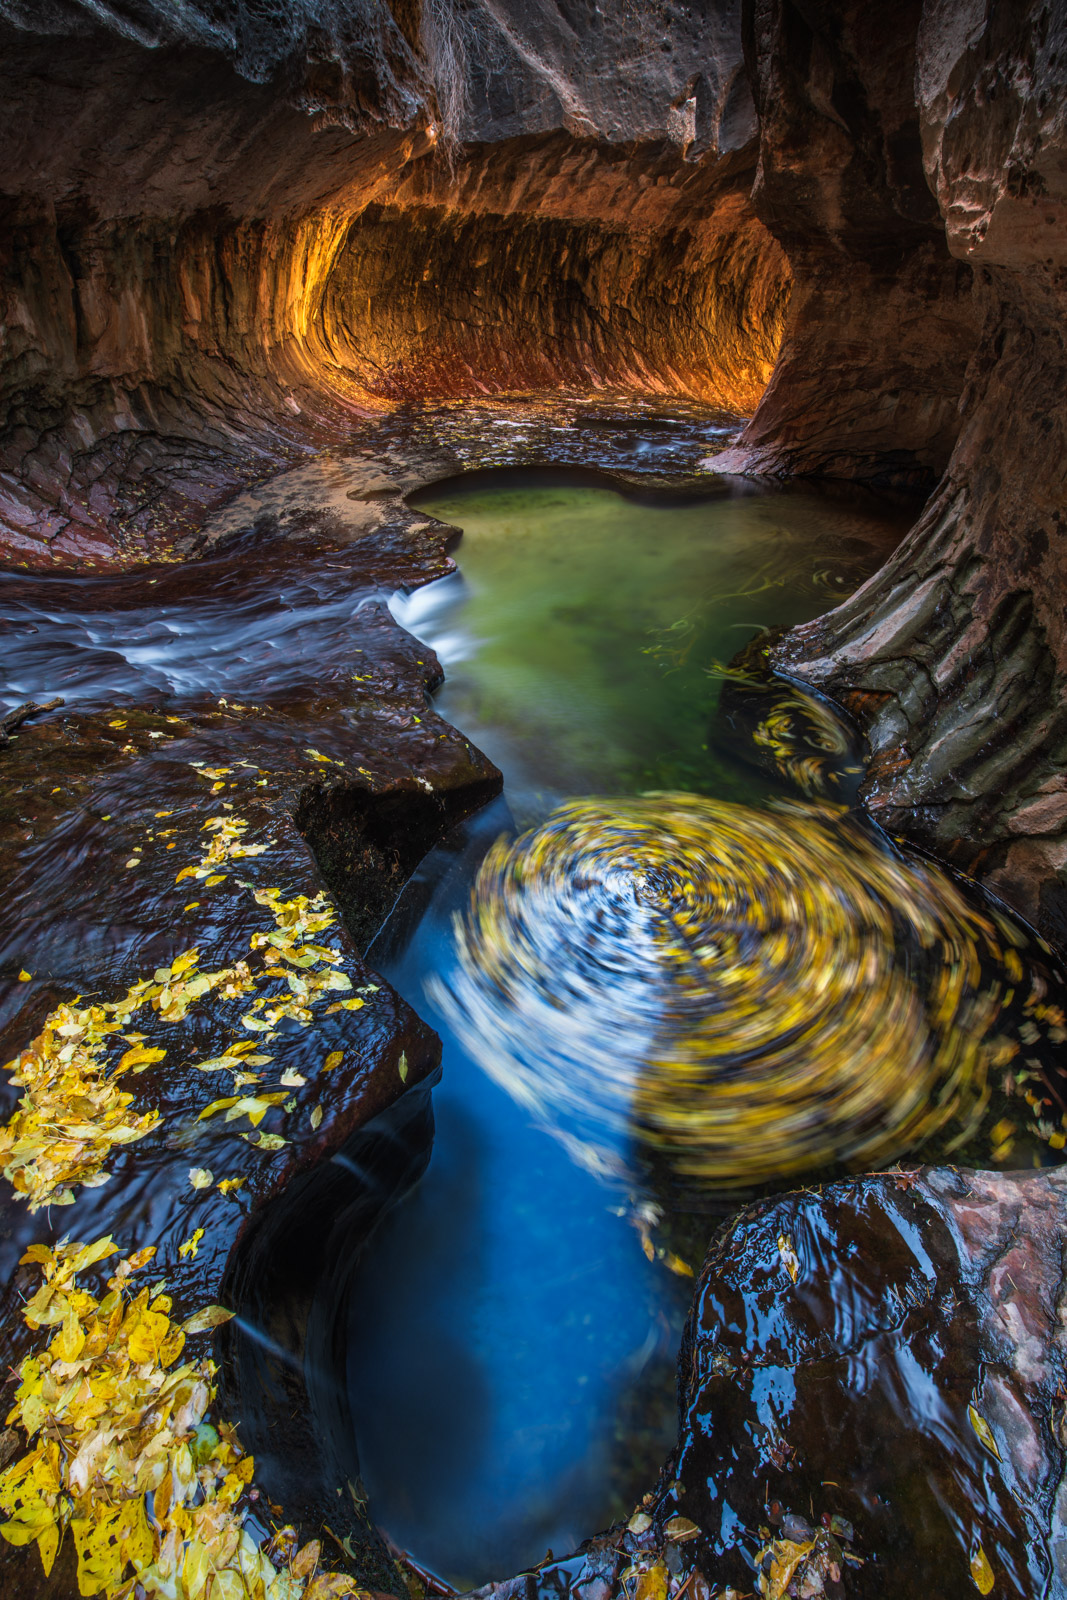 Swirling autumn leaves in the Subway slot canyon, Zion National Park, Utah.